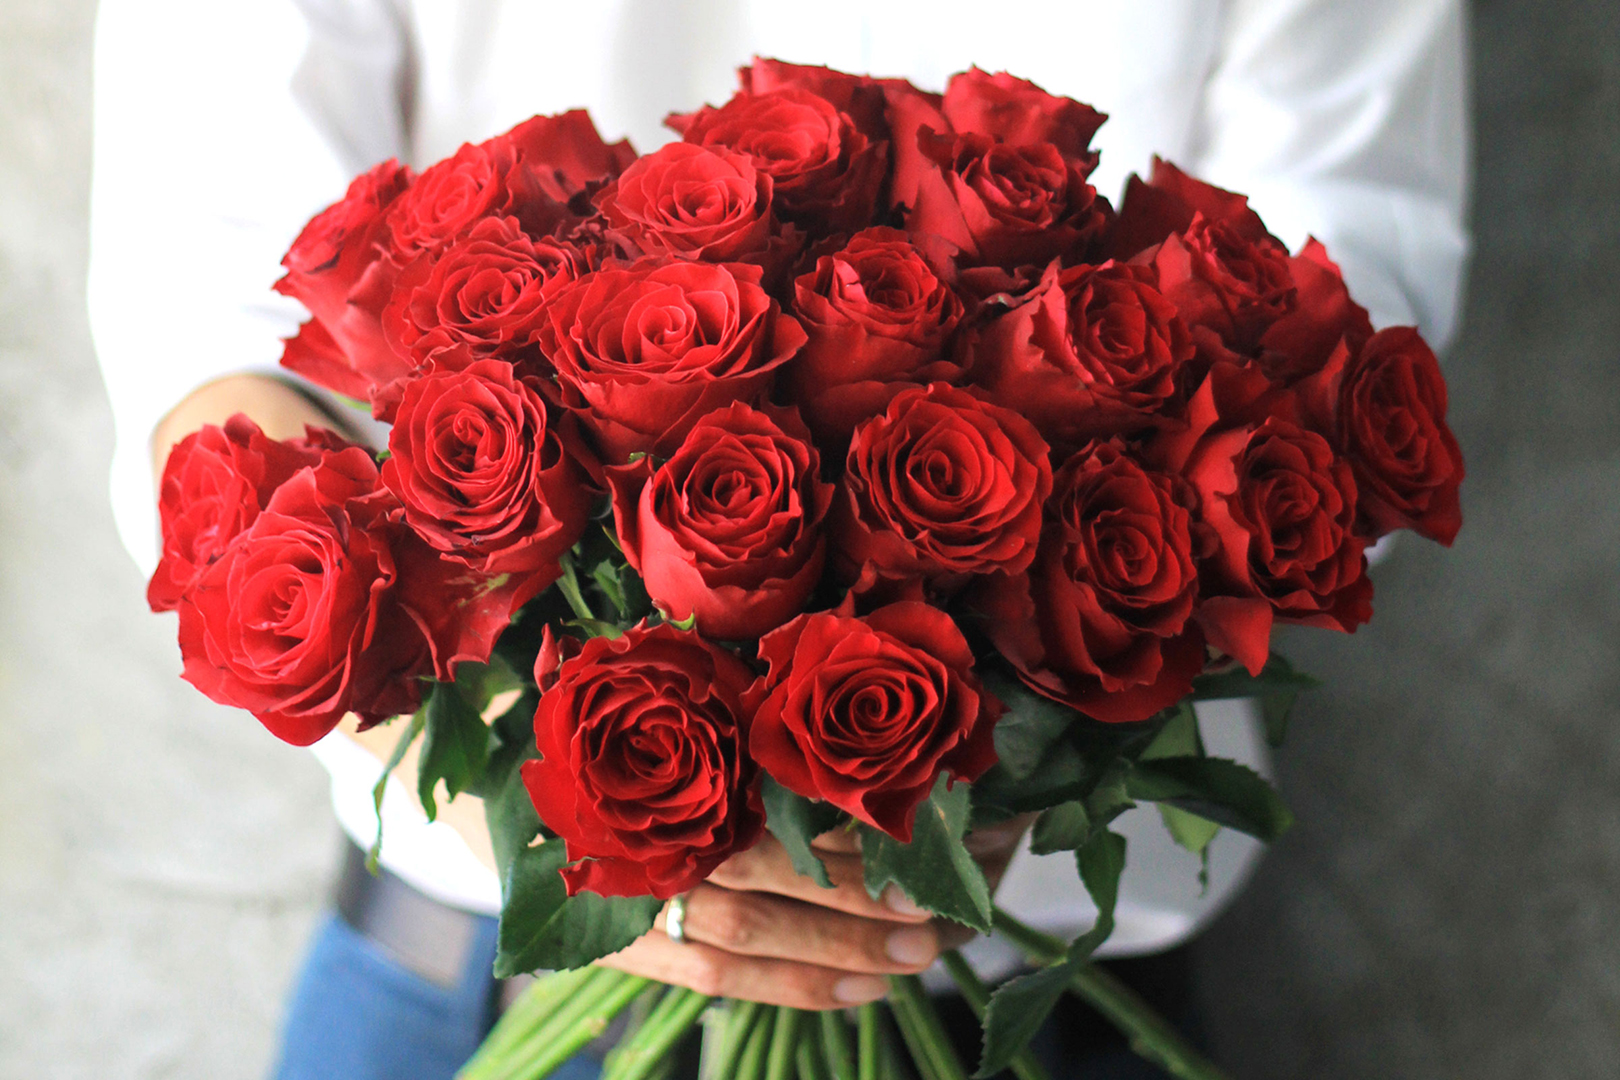 Luxury flower arrangements bouquets for valentines day windowflowers windowflowers offer valentines day flowers of the finest quality and are guaranteed to be fresh for 7 days delivered with care by our well known courier izmirmasajfo